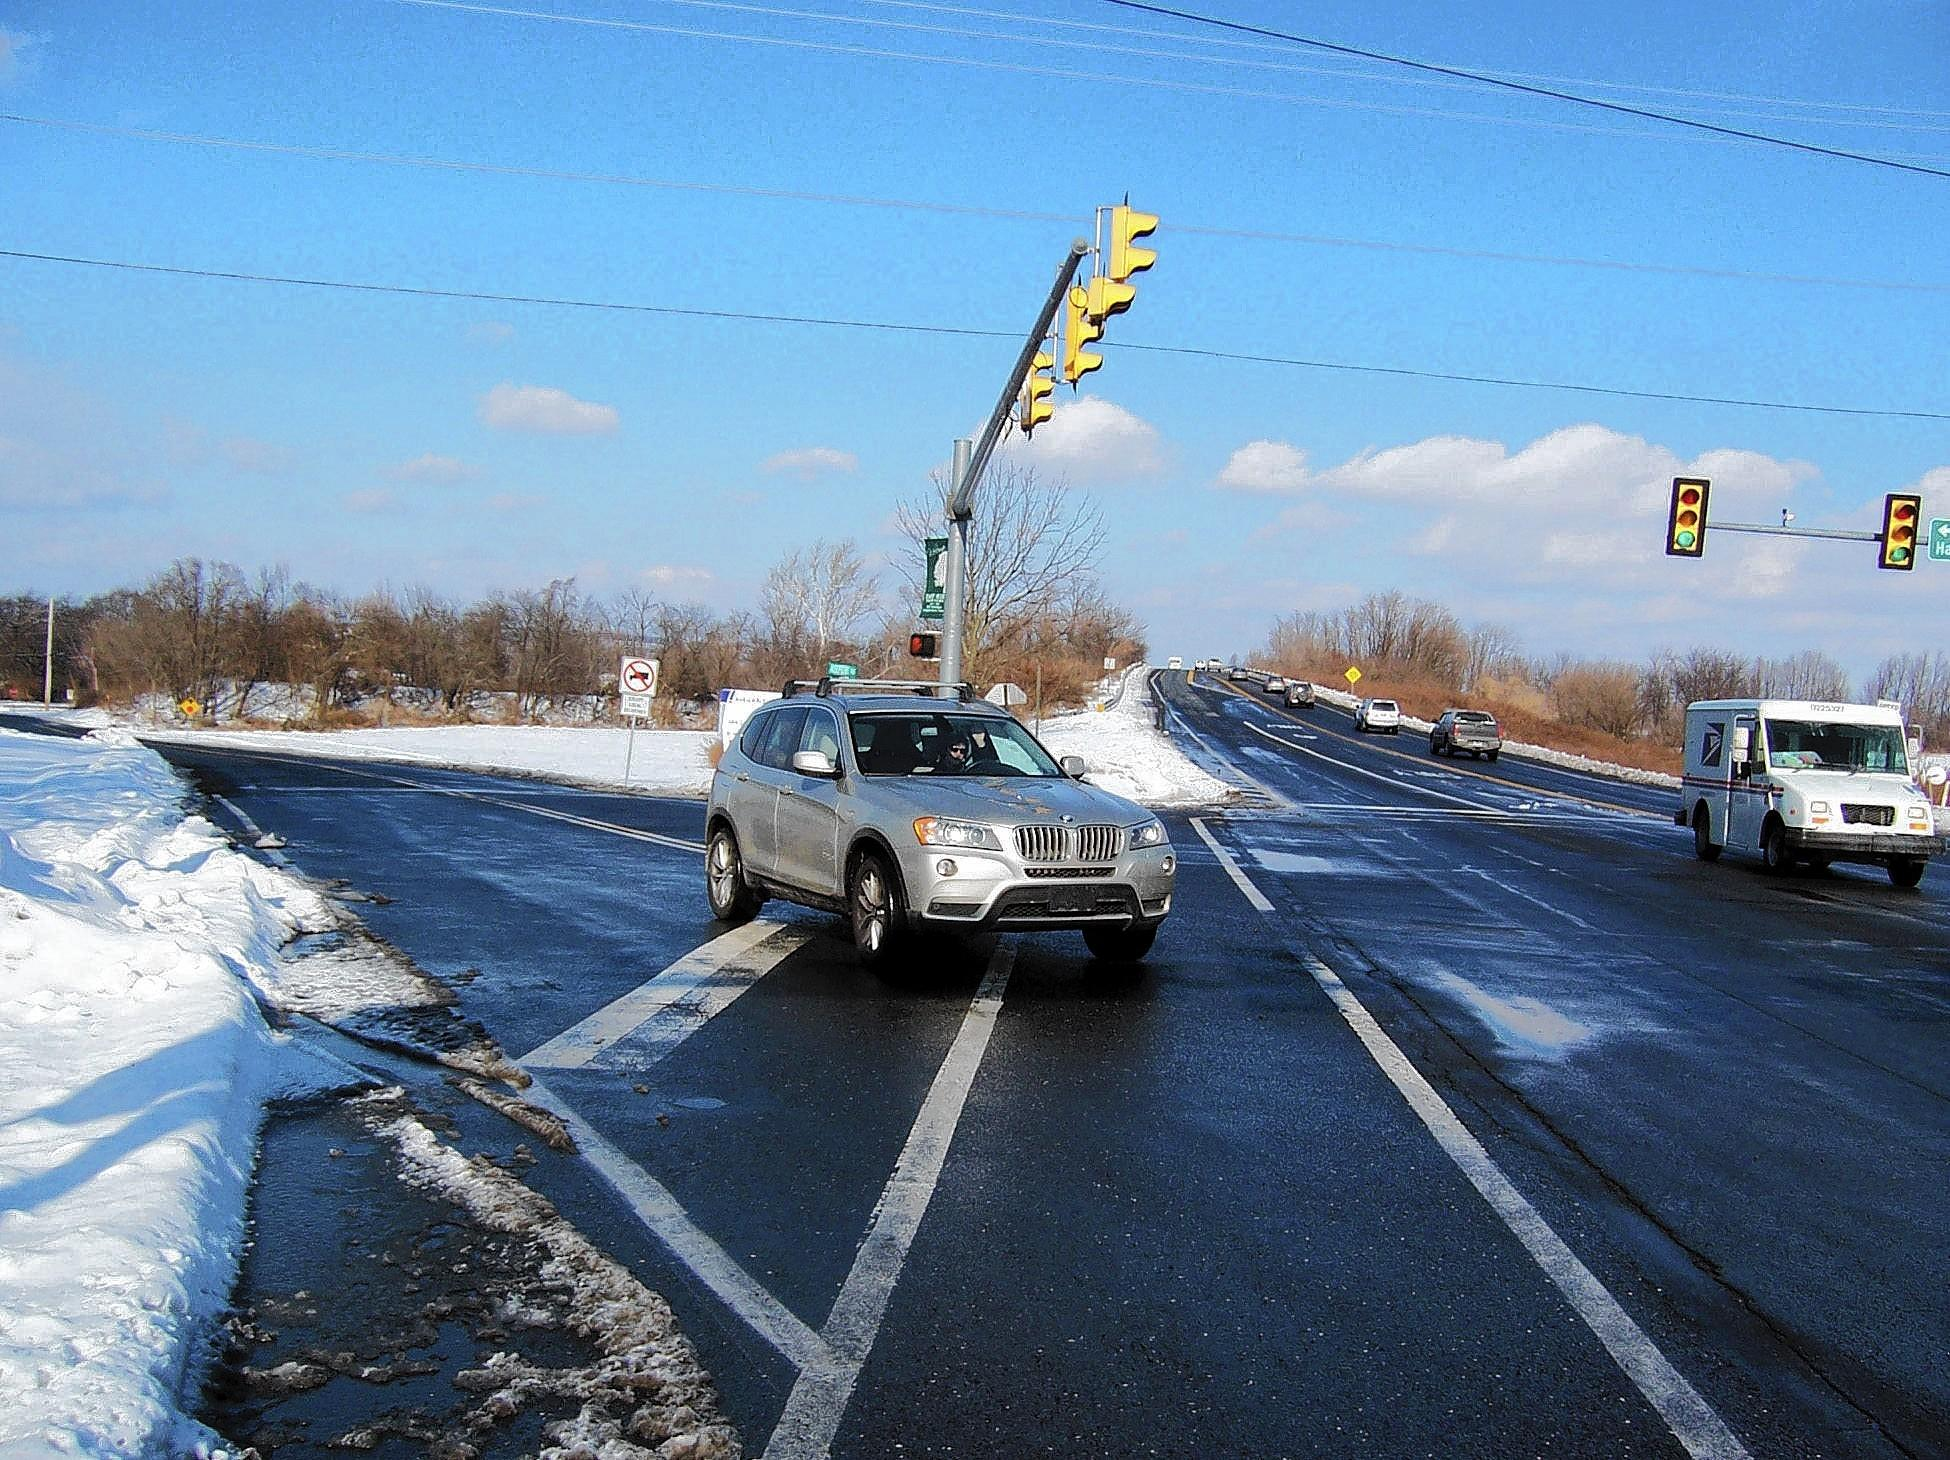 A motorist considers turning right on red from Snowdrift Road onto Airport Road in East Allen Township. Right on red is allowed, despite the hard angle required for looking back to the left for conflicting traffic.